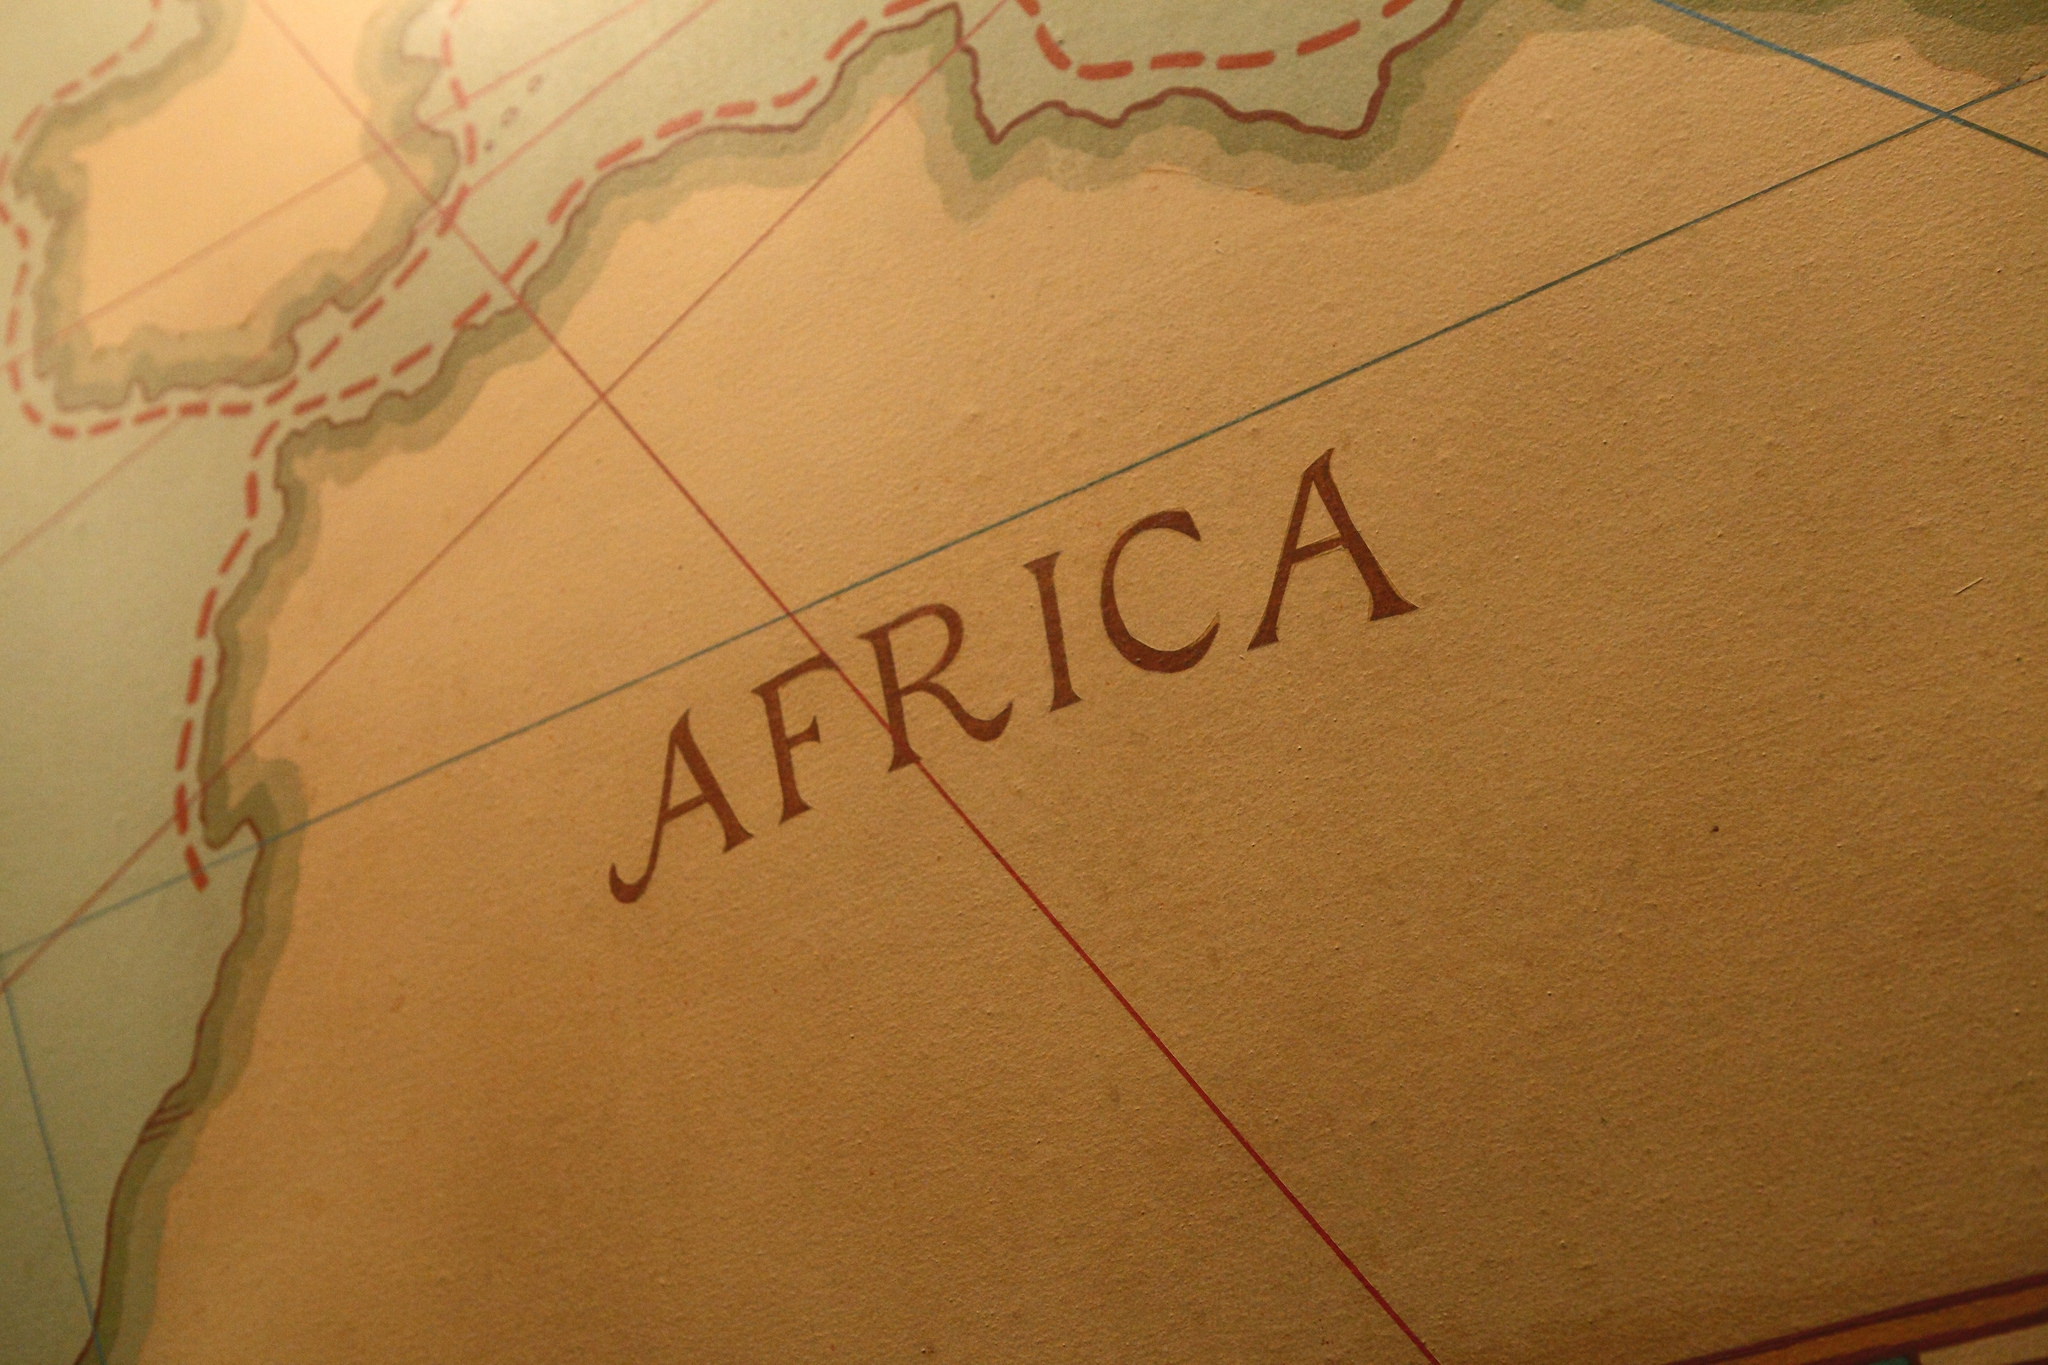 Africa by Sam Howzit, licence: CC BY 2.0